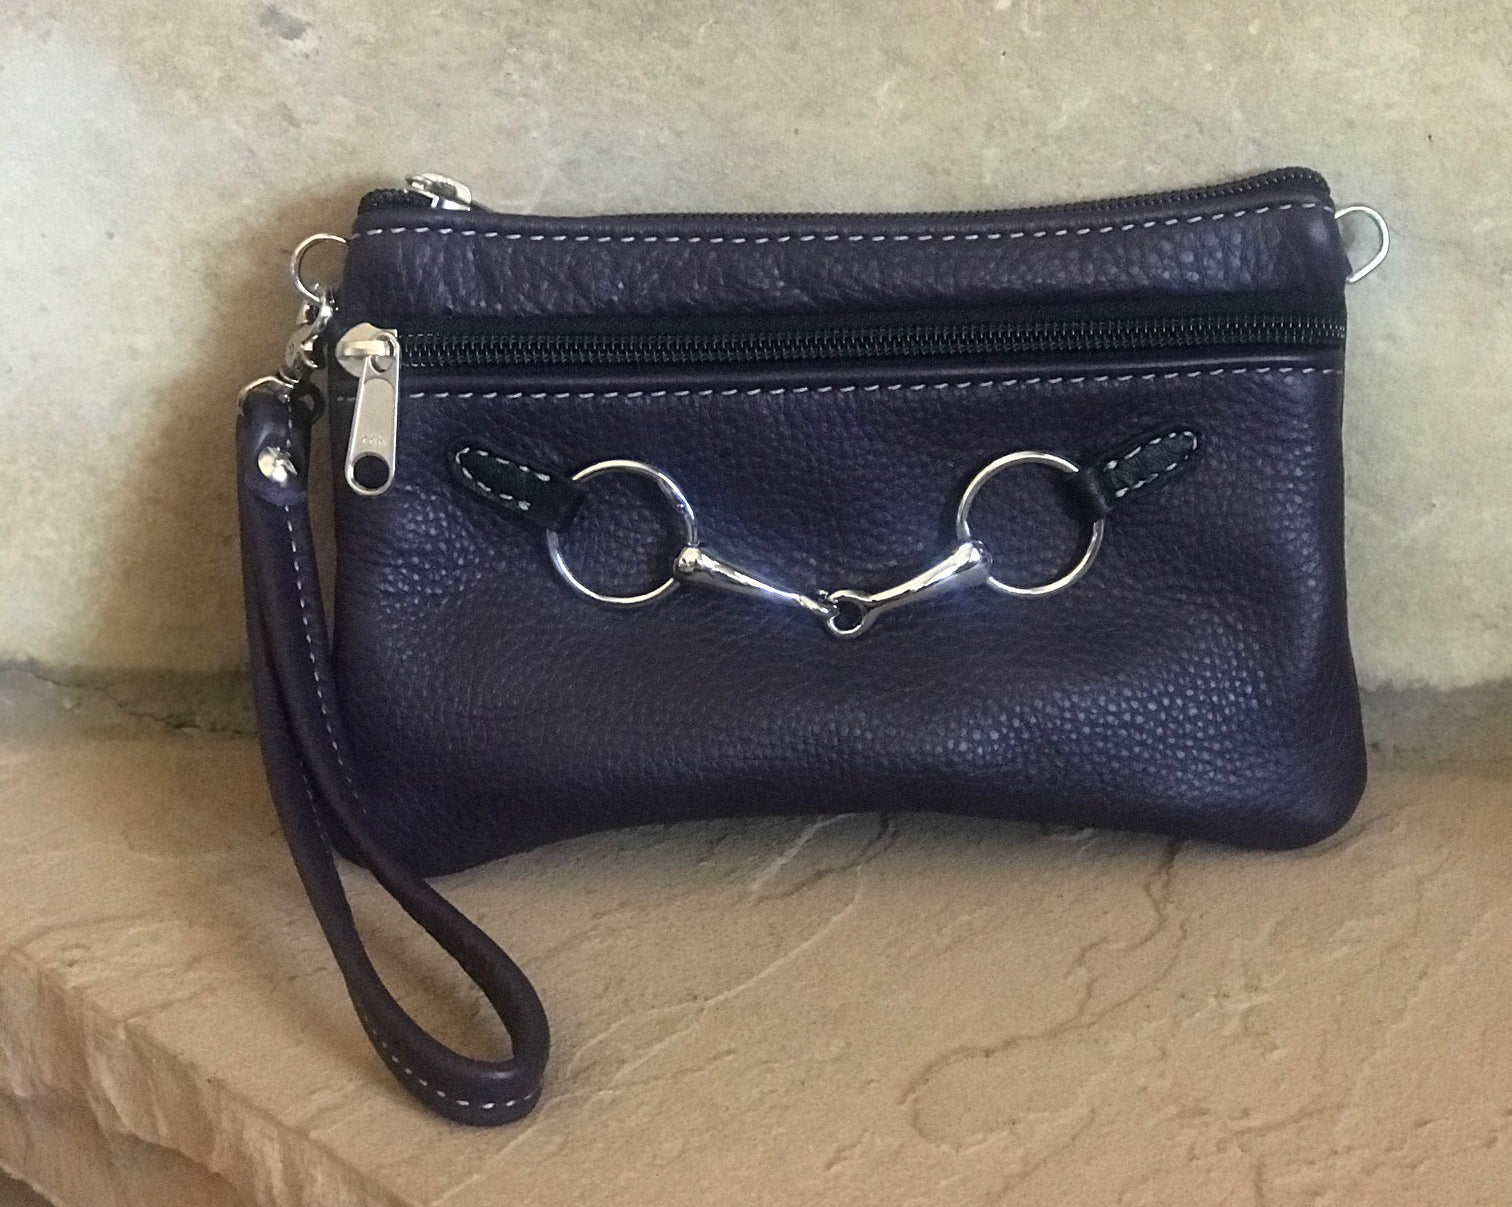 Leather Wristlet with Chrome Bit